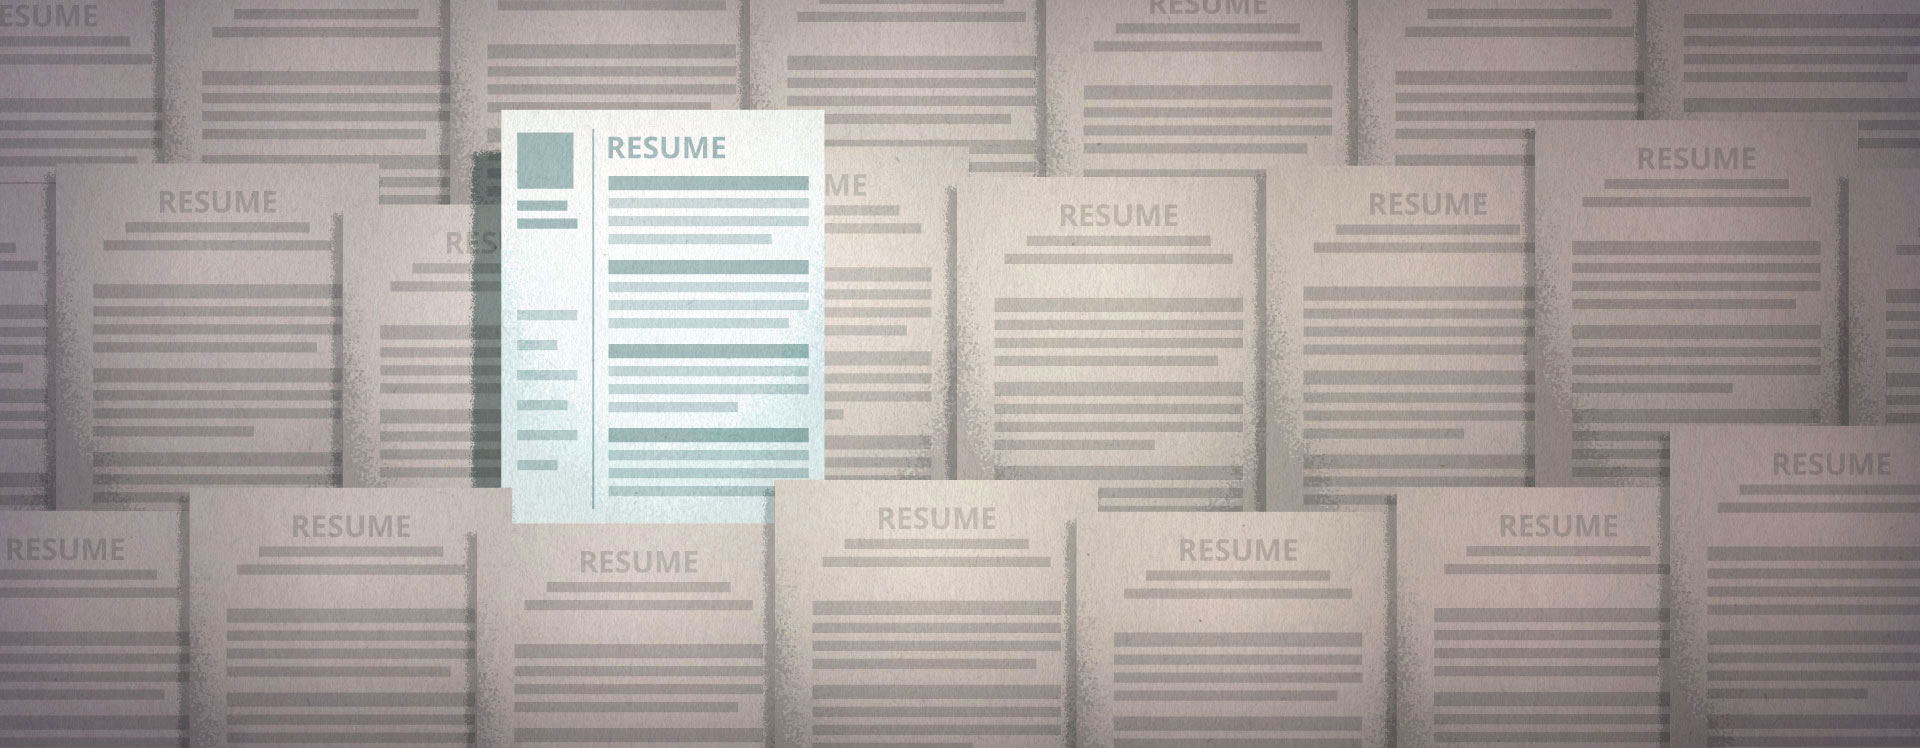 How To Make Your Data Science Resume Stand Out